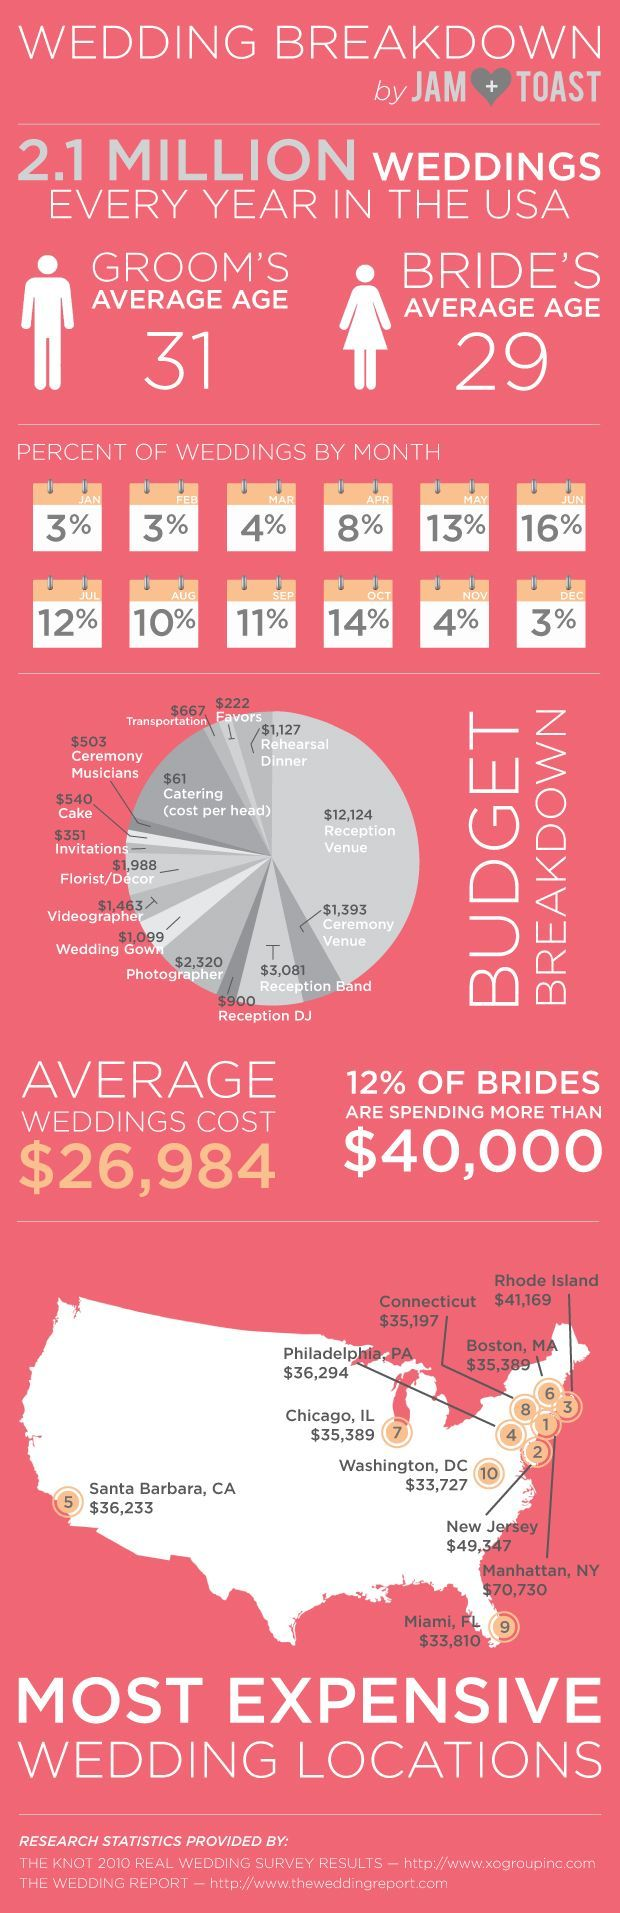 105 best Wedding - Budget images on Pinterest | Budget wedding ...